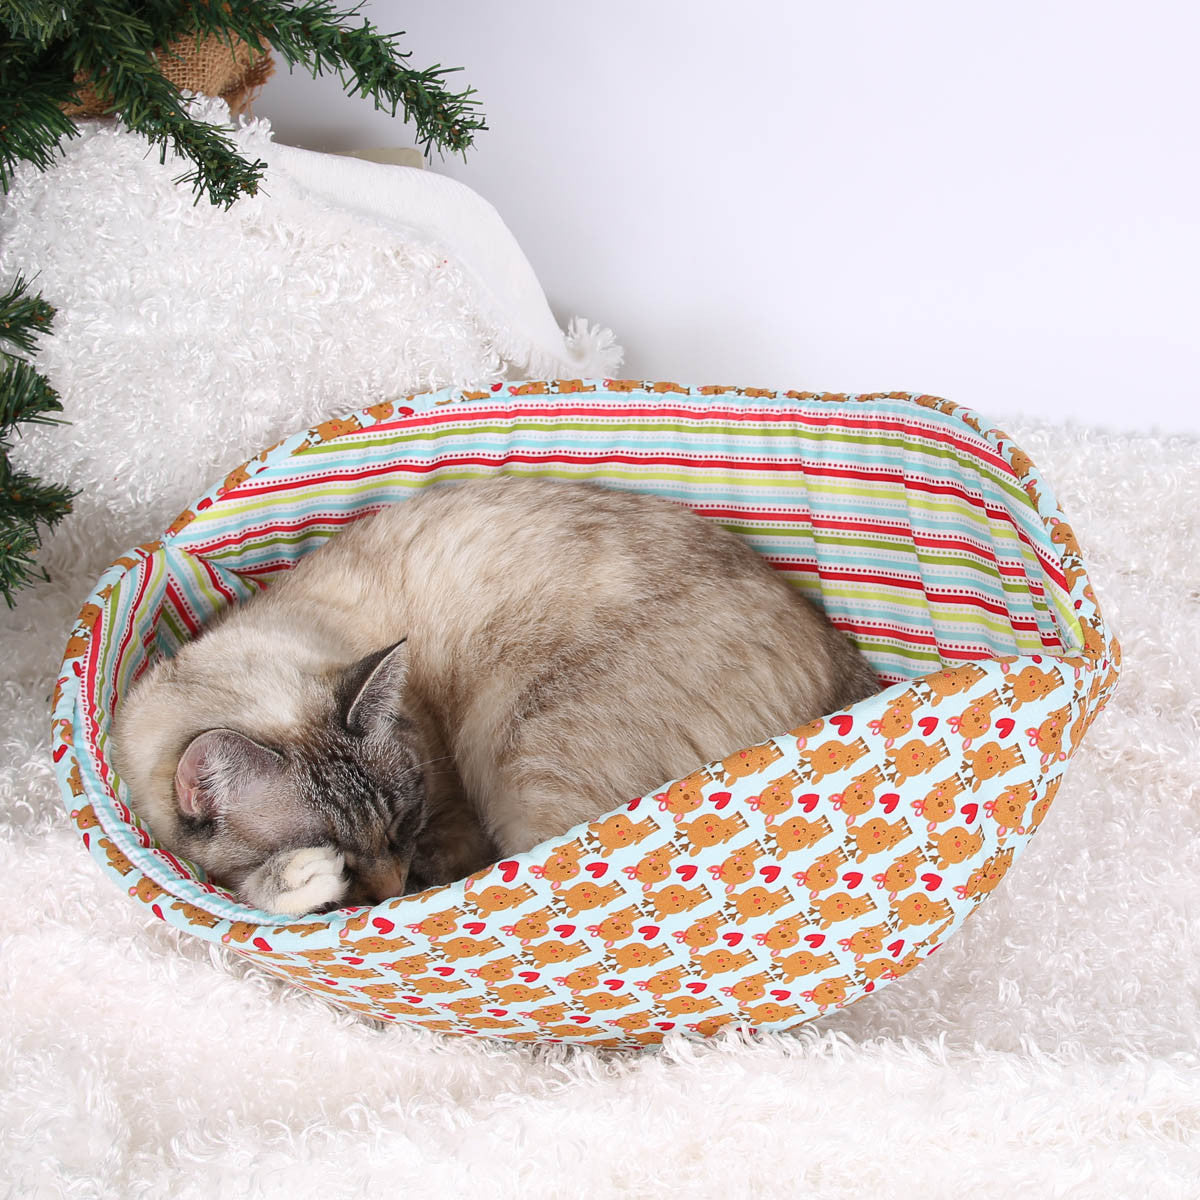 ... Cat Canoe Modern Cat Bed Made In Christmas Calico And Reindeer Fabric  ...